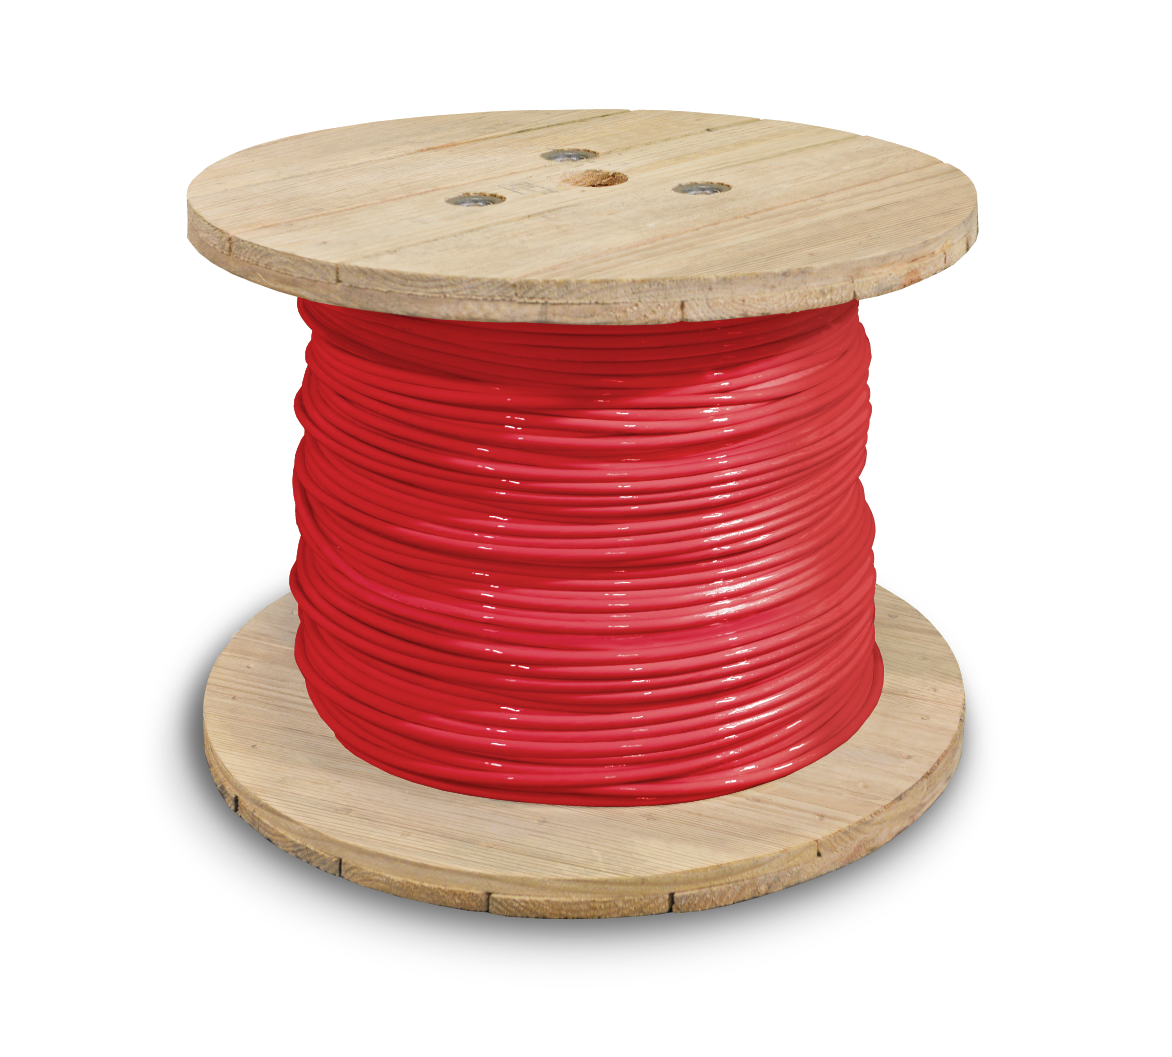 188583_THHN_1awg_2500ft_Red